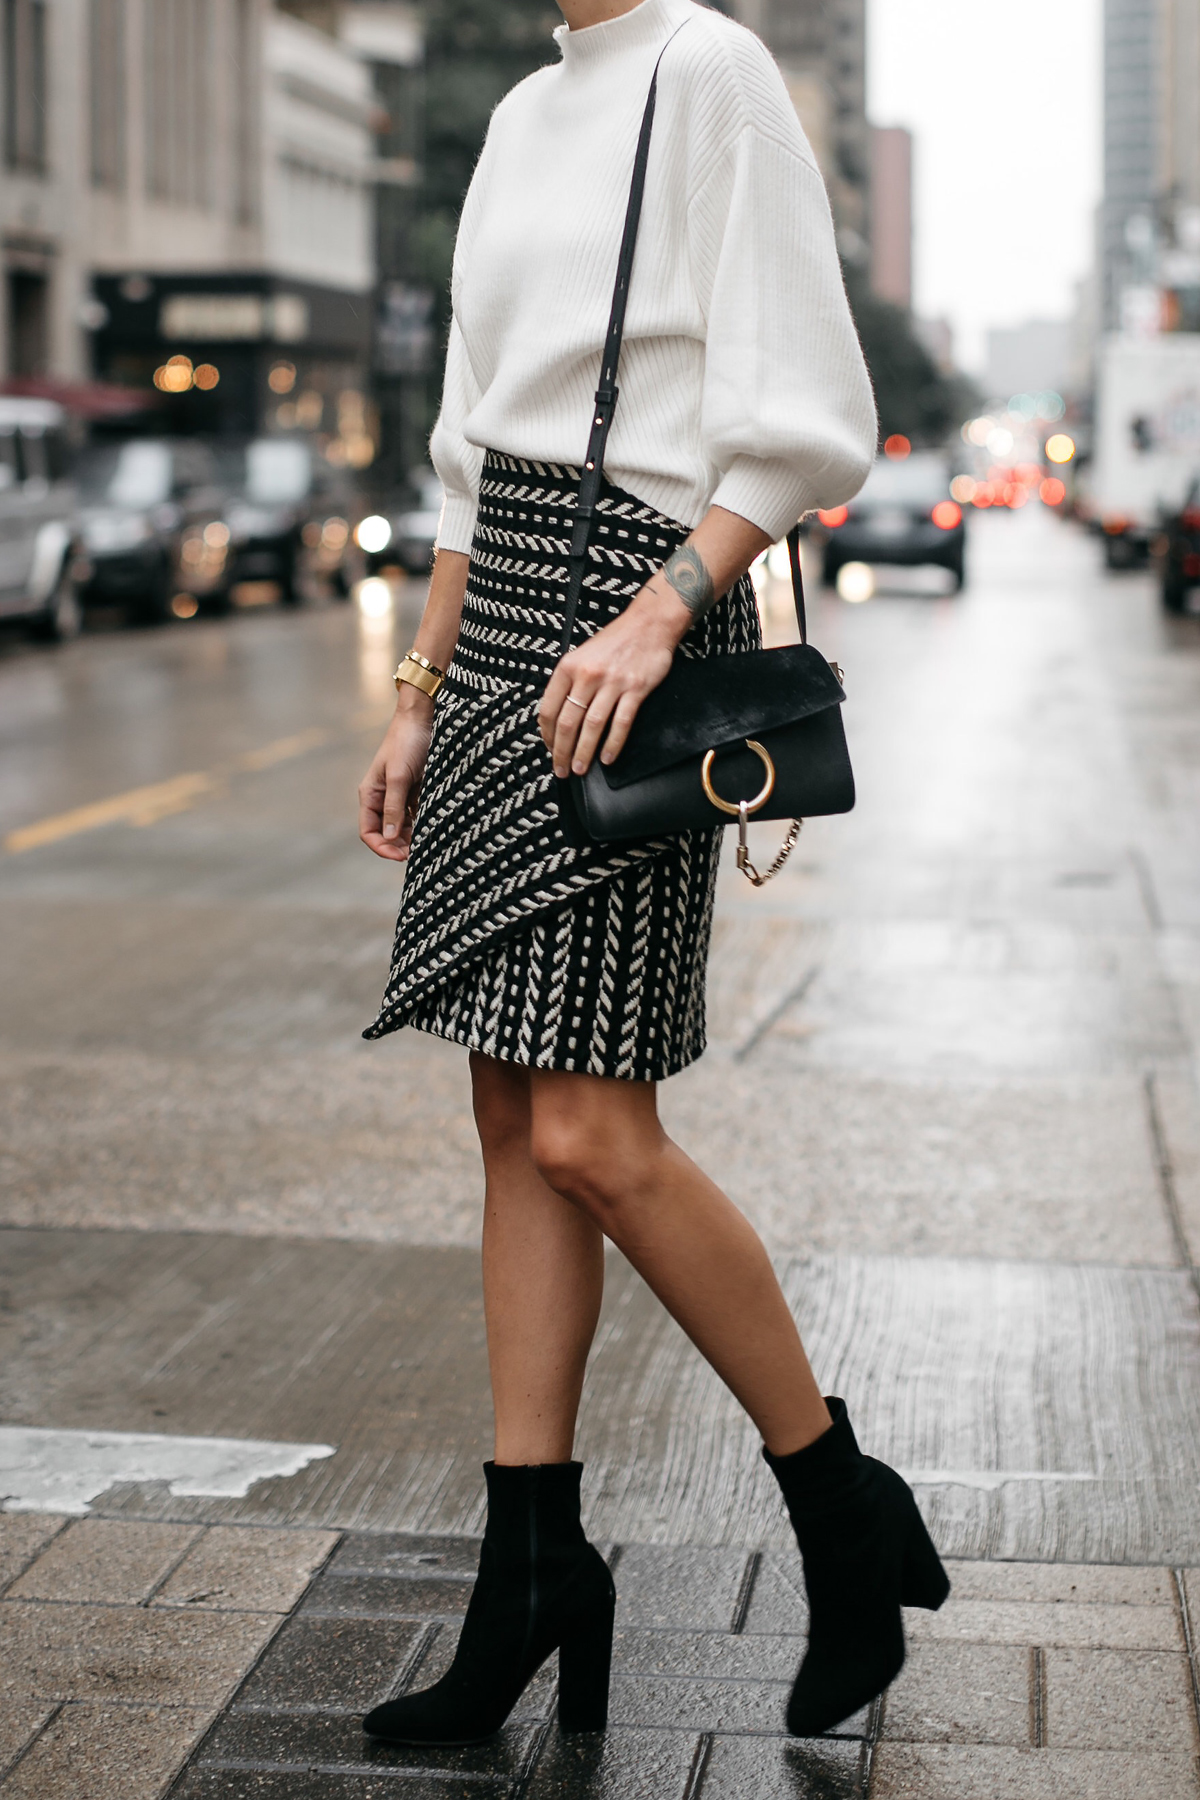 Fashion Jackson White Sweater Black and White Jacquard Skirt Black Ankle Booties Chloe Faye Handbag 1